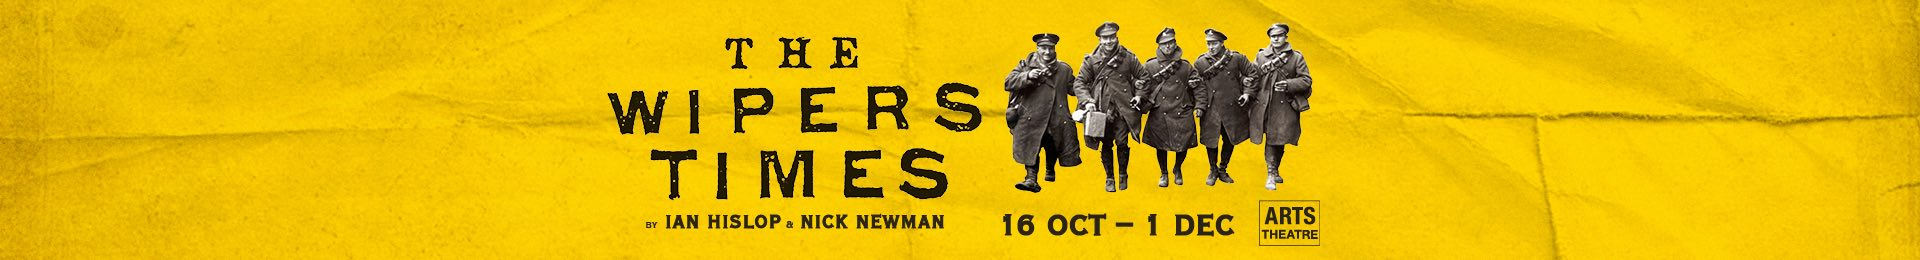 The Wipers Times banner image